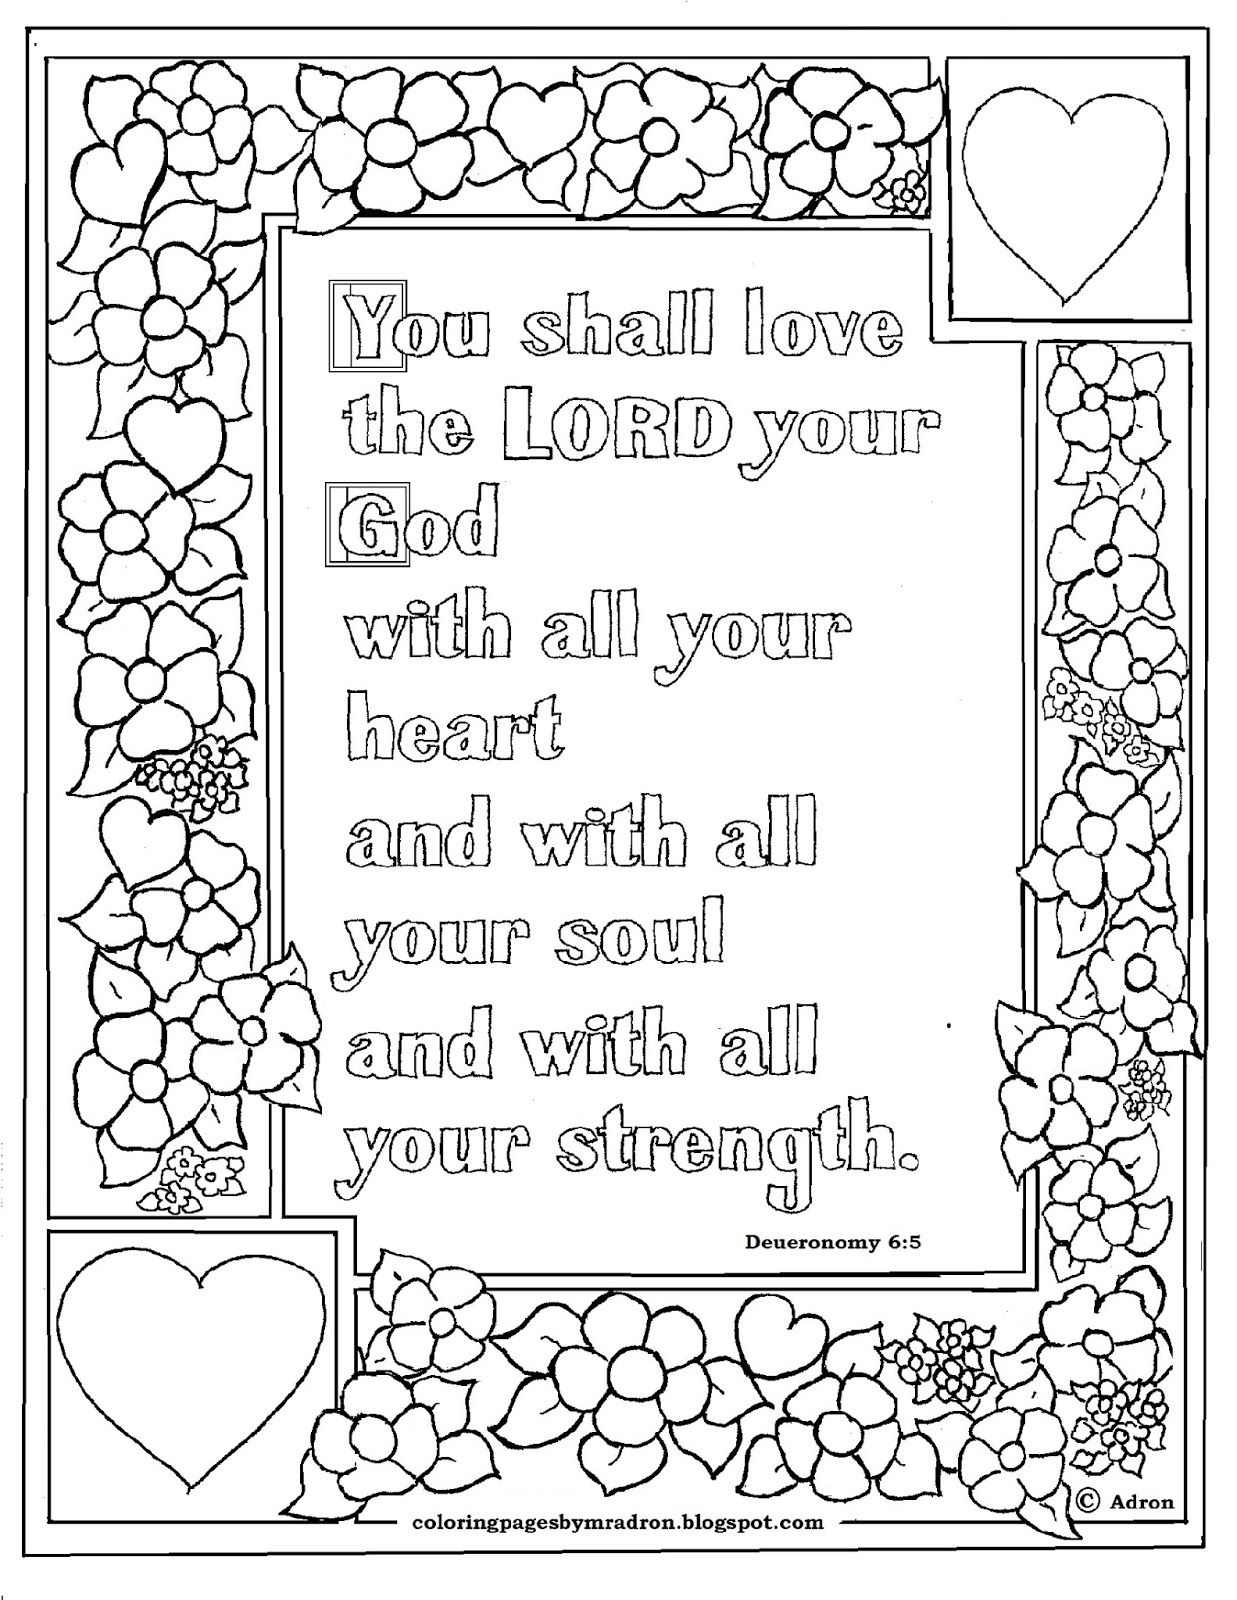 coloring pages with bible verses Collection-Deuteronomy 6 5 Bible verse to print and color This is a free printable Bible verse coloring page it is perfect for children and adults t 17-n